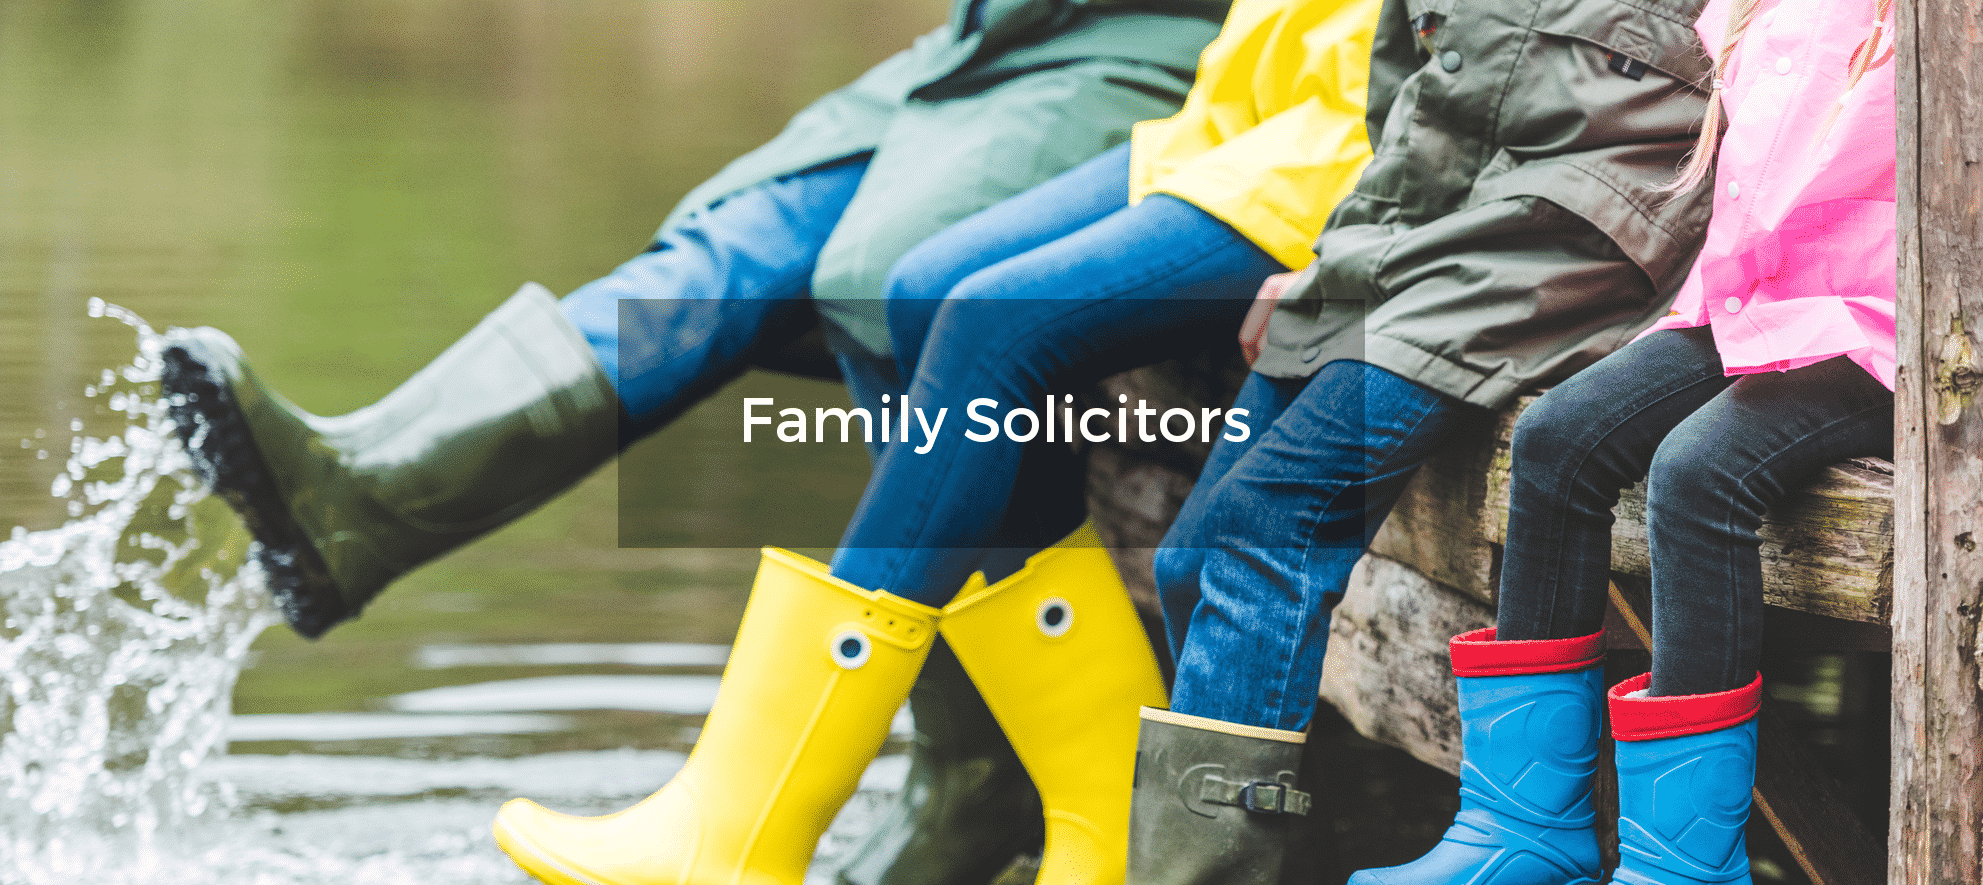 family solicitors done